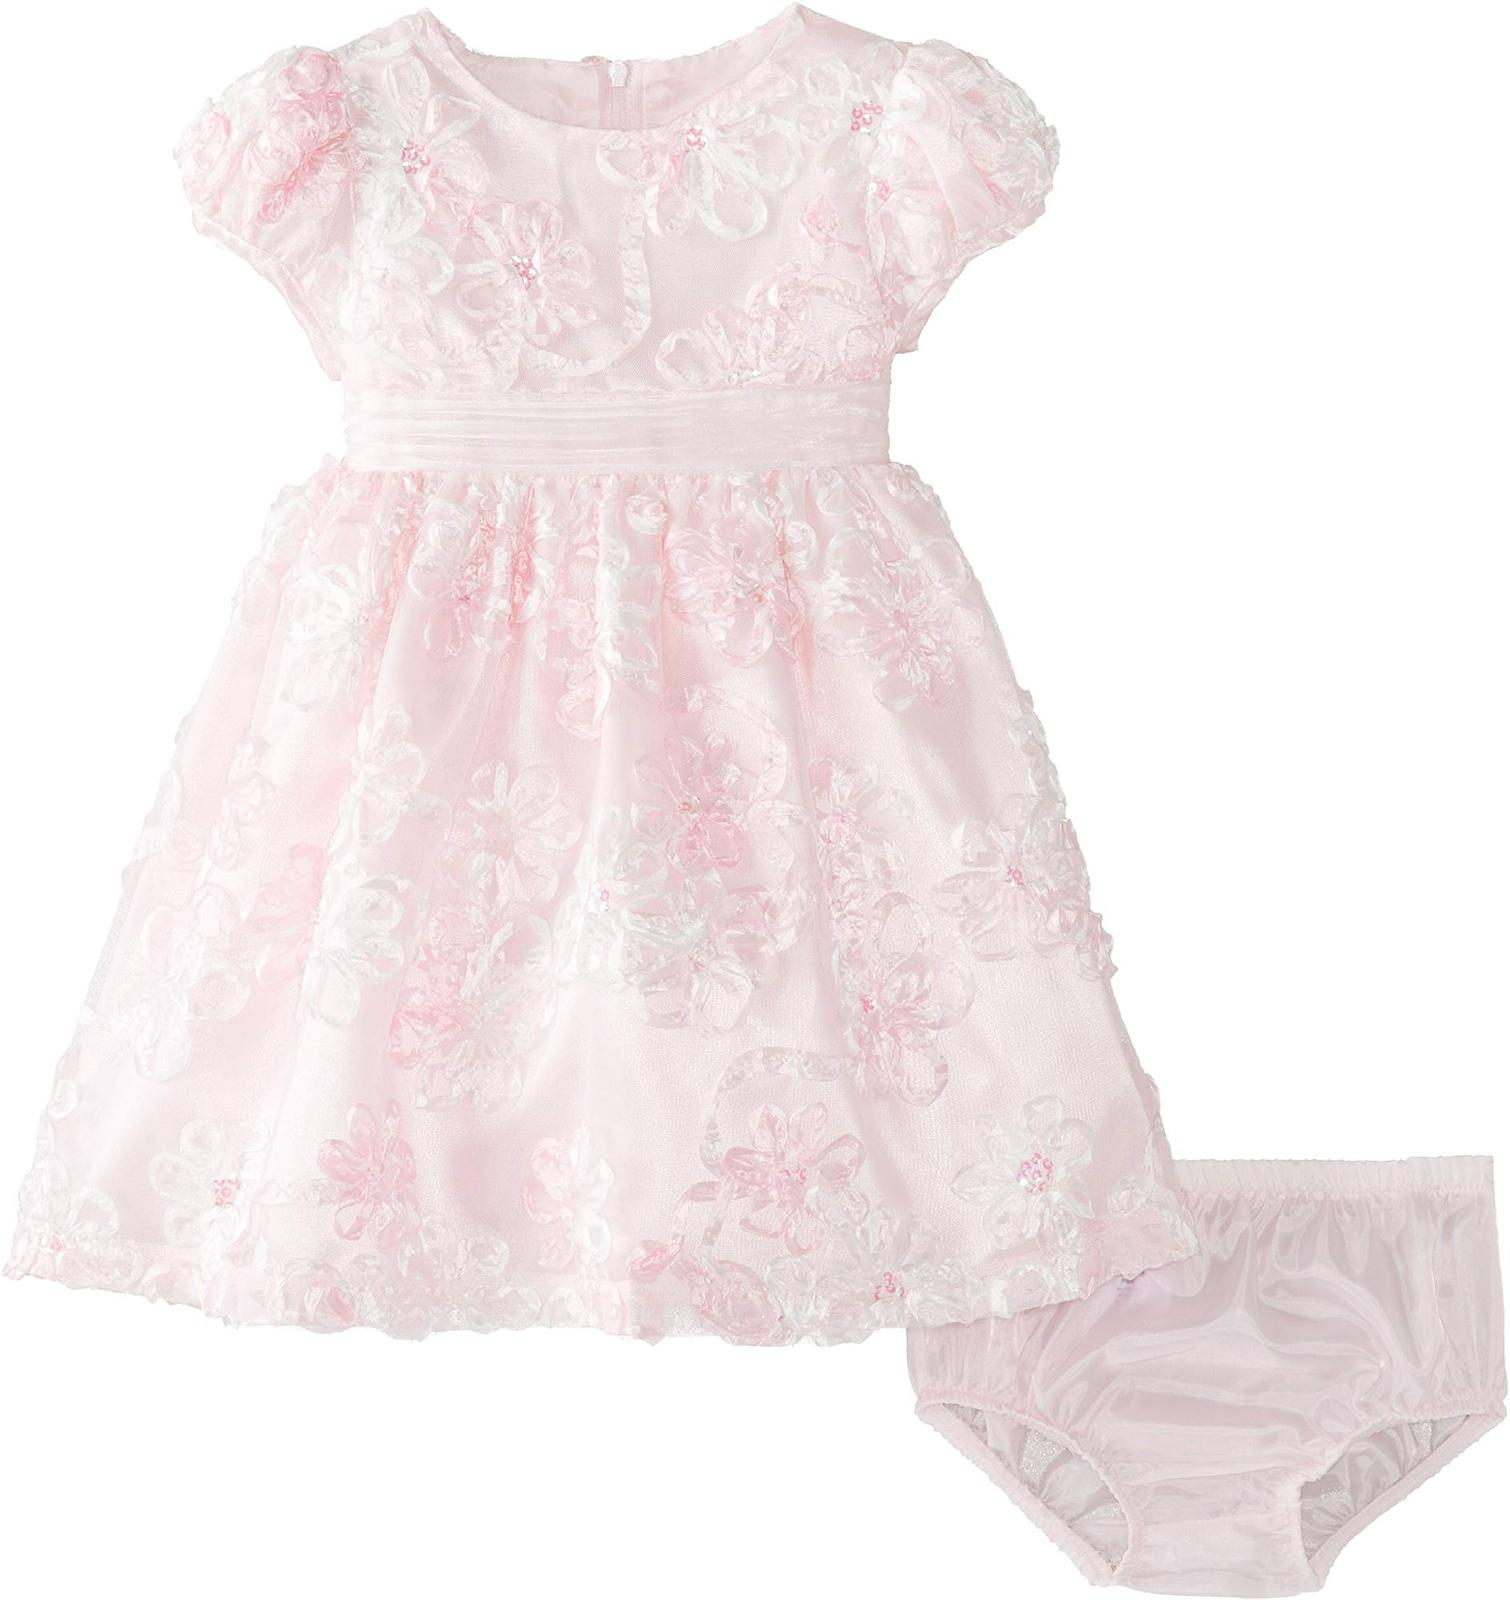 Bonnie Jean Baby Girls 3M-24M Pink/White Sequined Soutache Social Party Dress